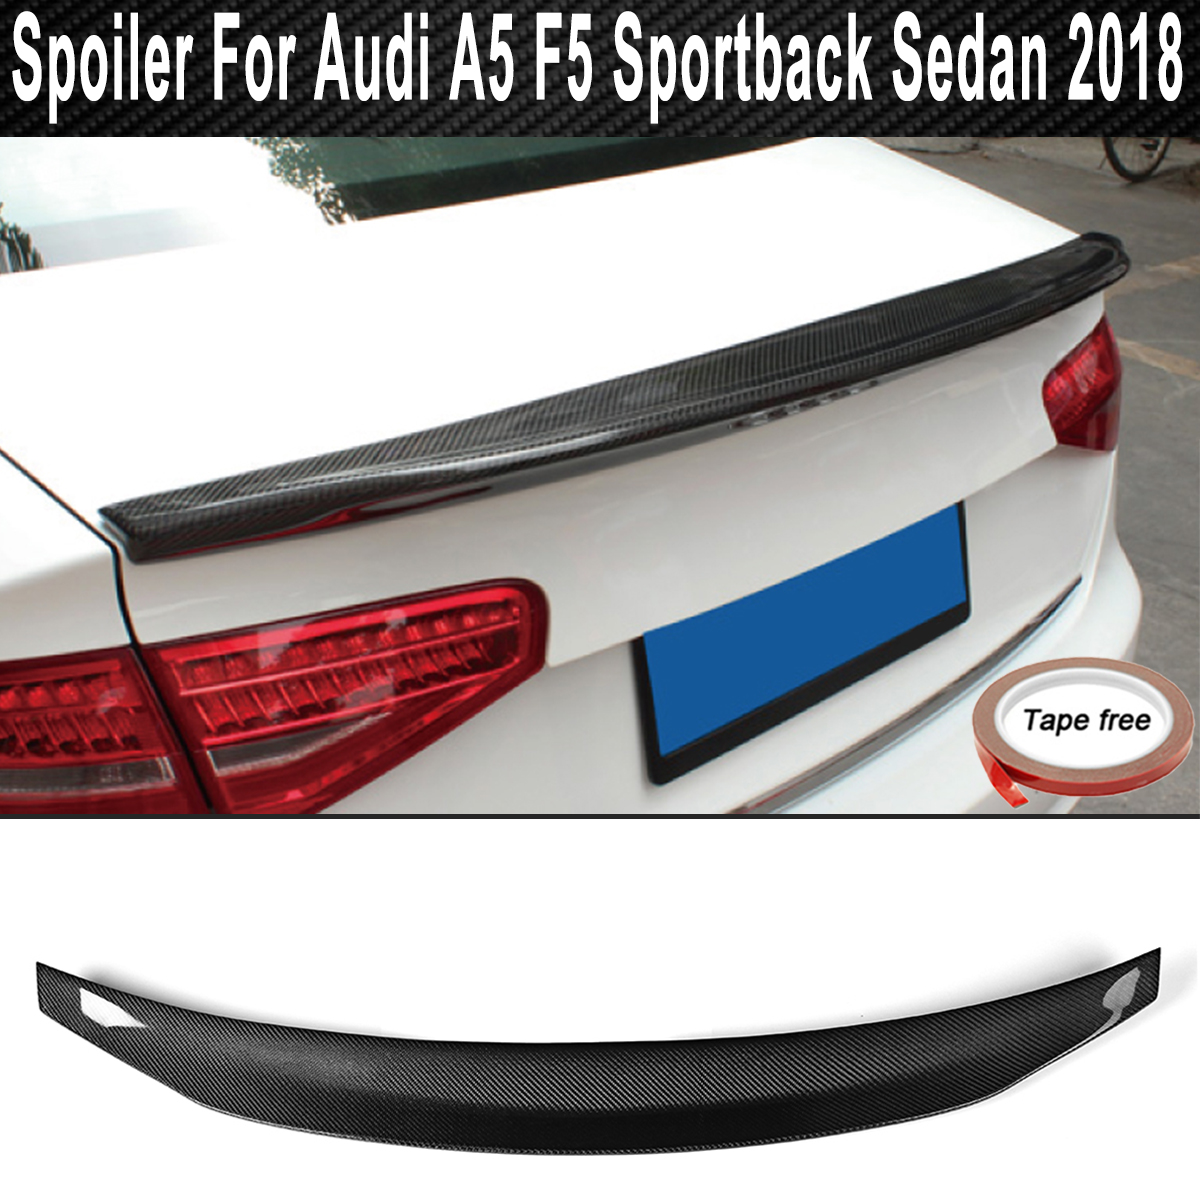 Real Carbon Fiber Rear Trunk Spoiler Tail Trunk Wing Boot Lip Wing for Audi A5 F5 Sportback Sedan 4-Door 2018 Car Accessories